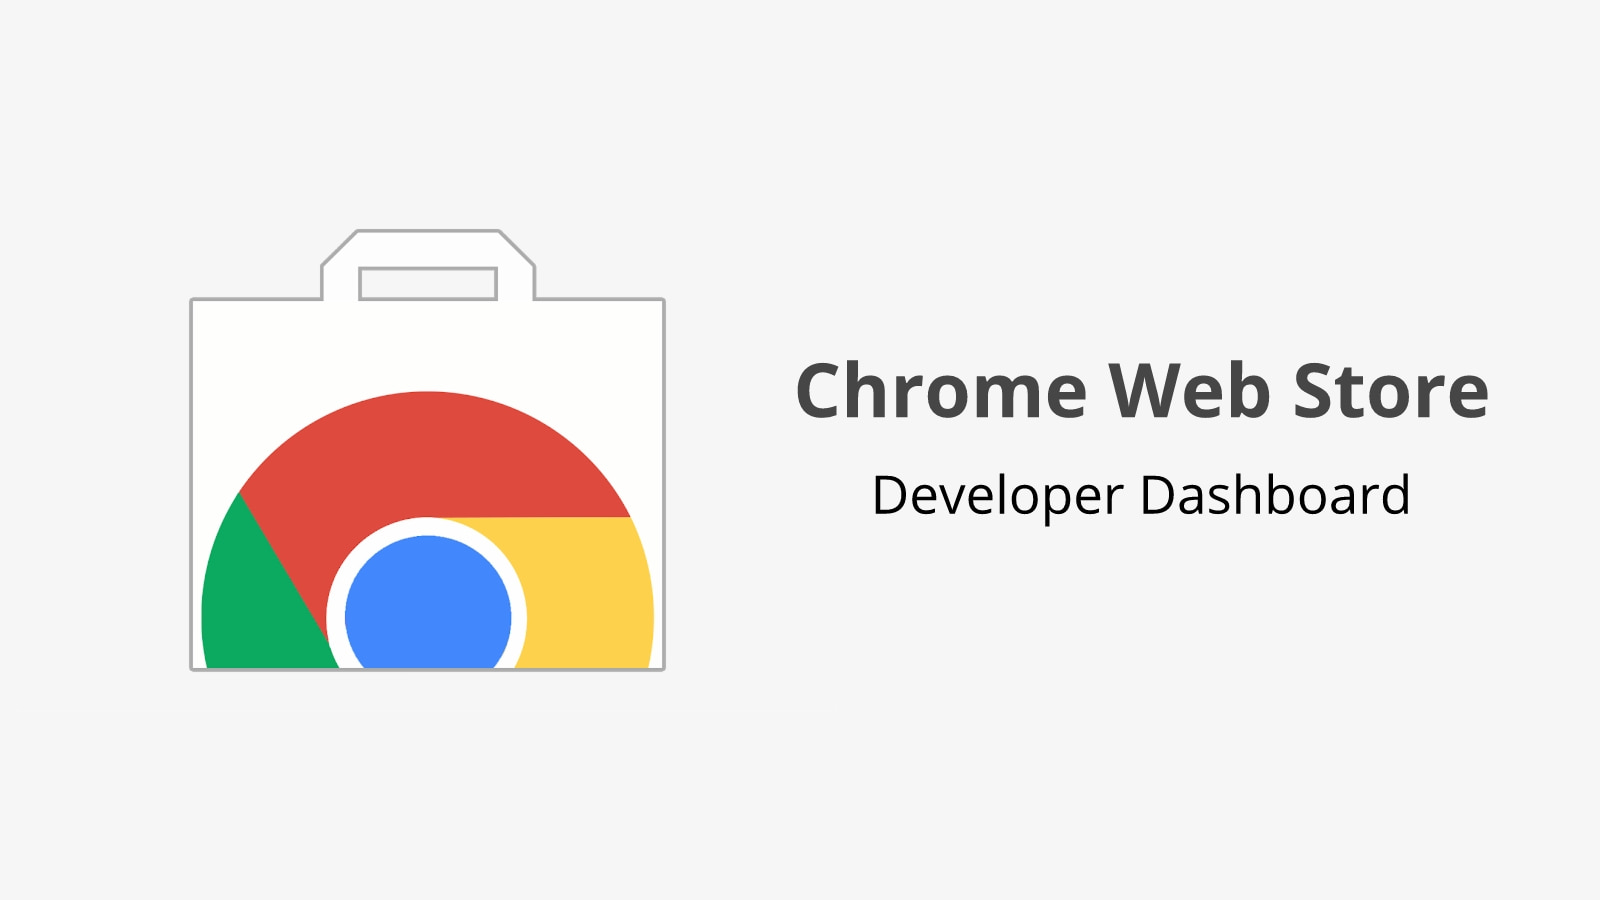 The Chrome Web Store Developer Dashboard gets a new look and upfront registration fee